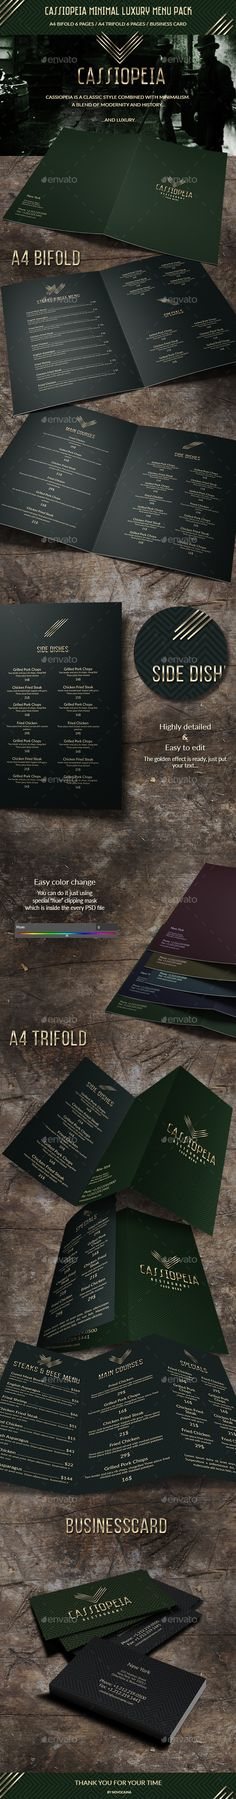 Cassiopeia Minimal Luxury Menu Pack  PSD Template • Download ↓ https://graphicriver.net/item/cassiopeia-minimal-luxury-menu-pack/16824077?ref=pxcr